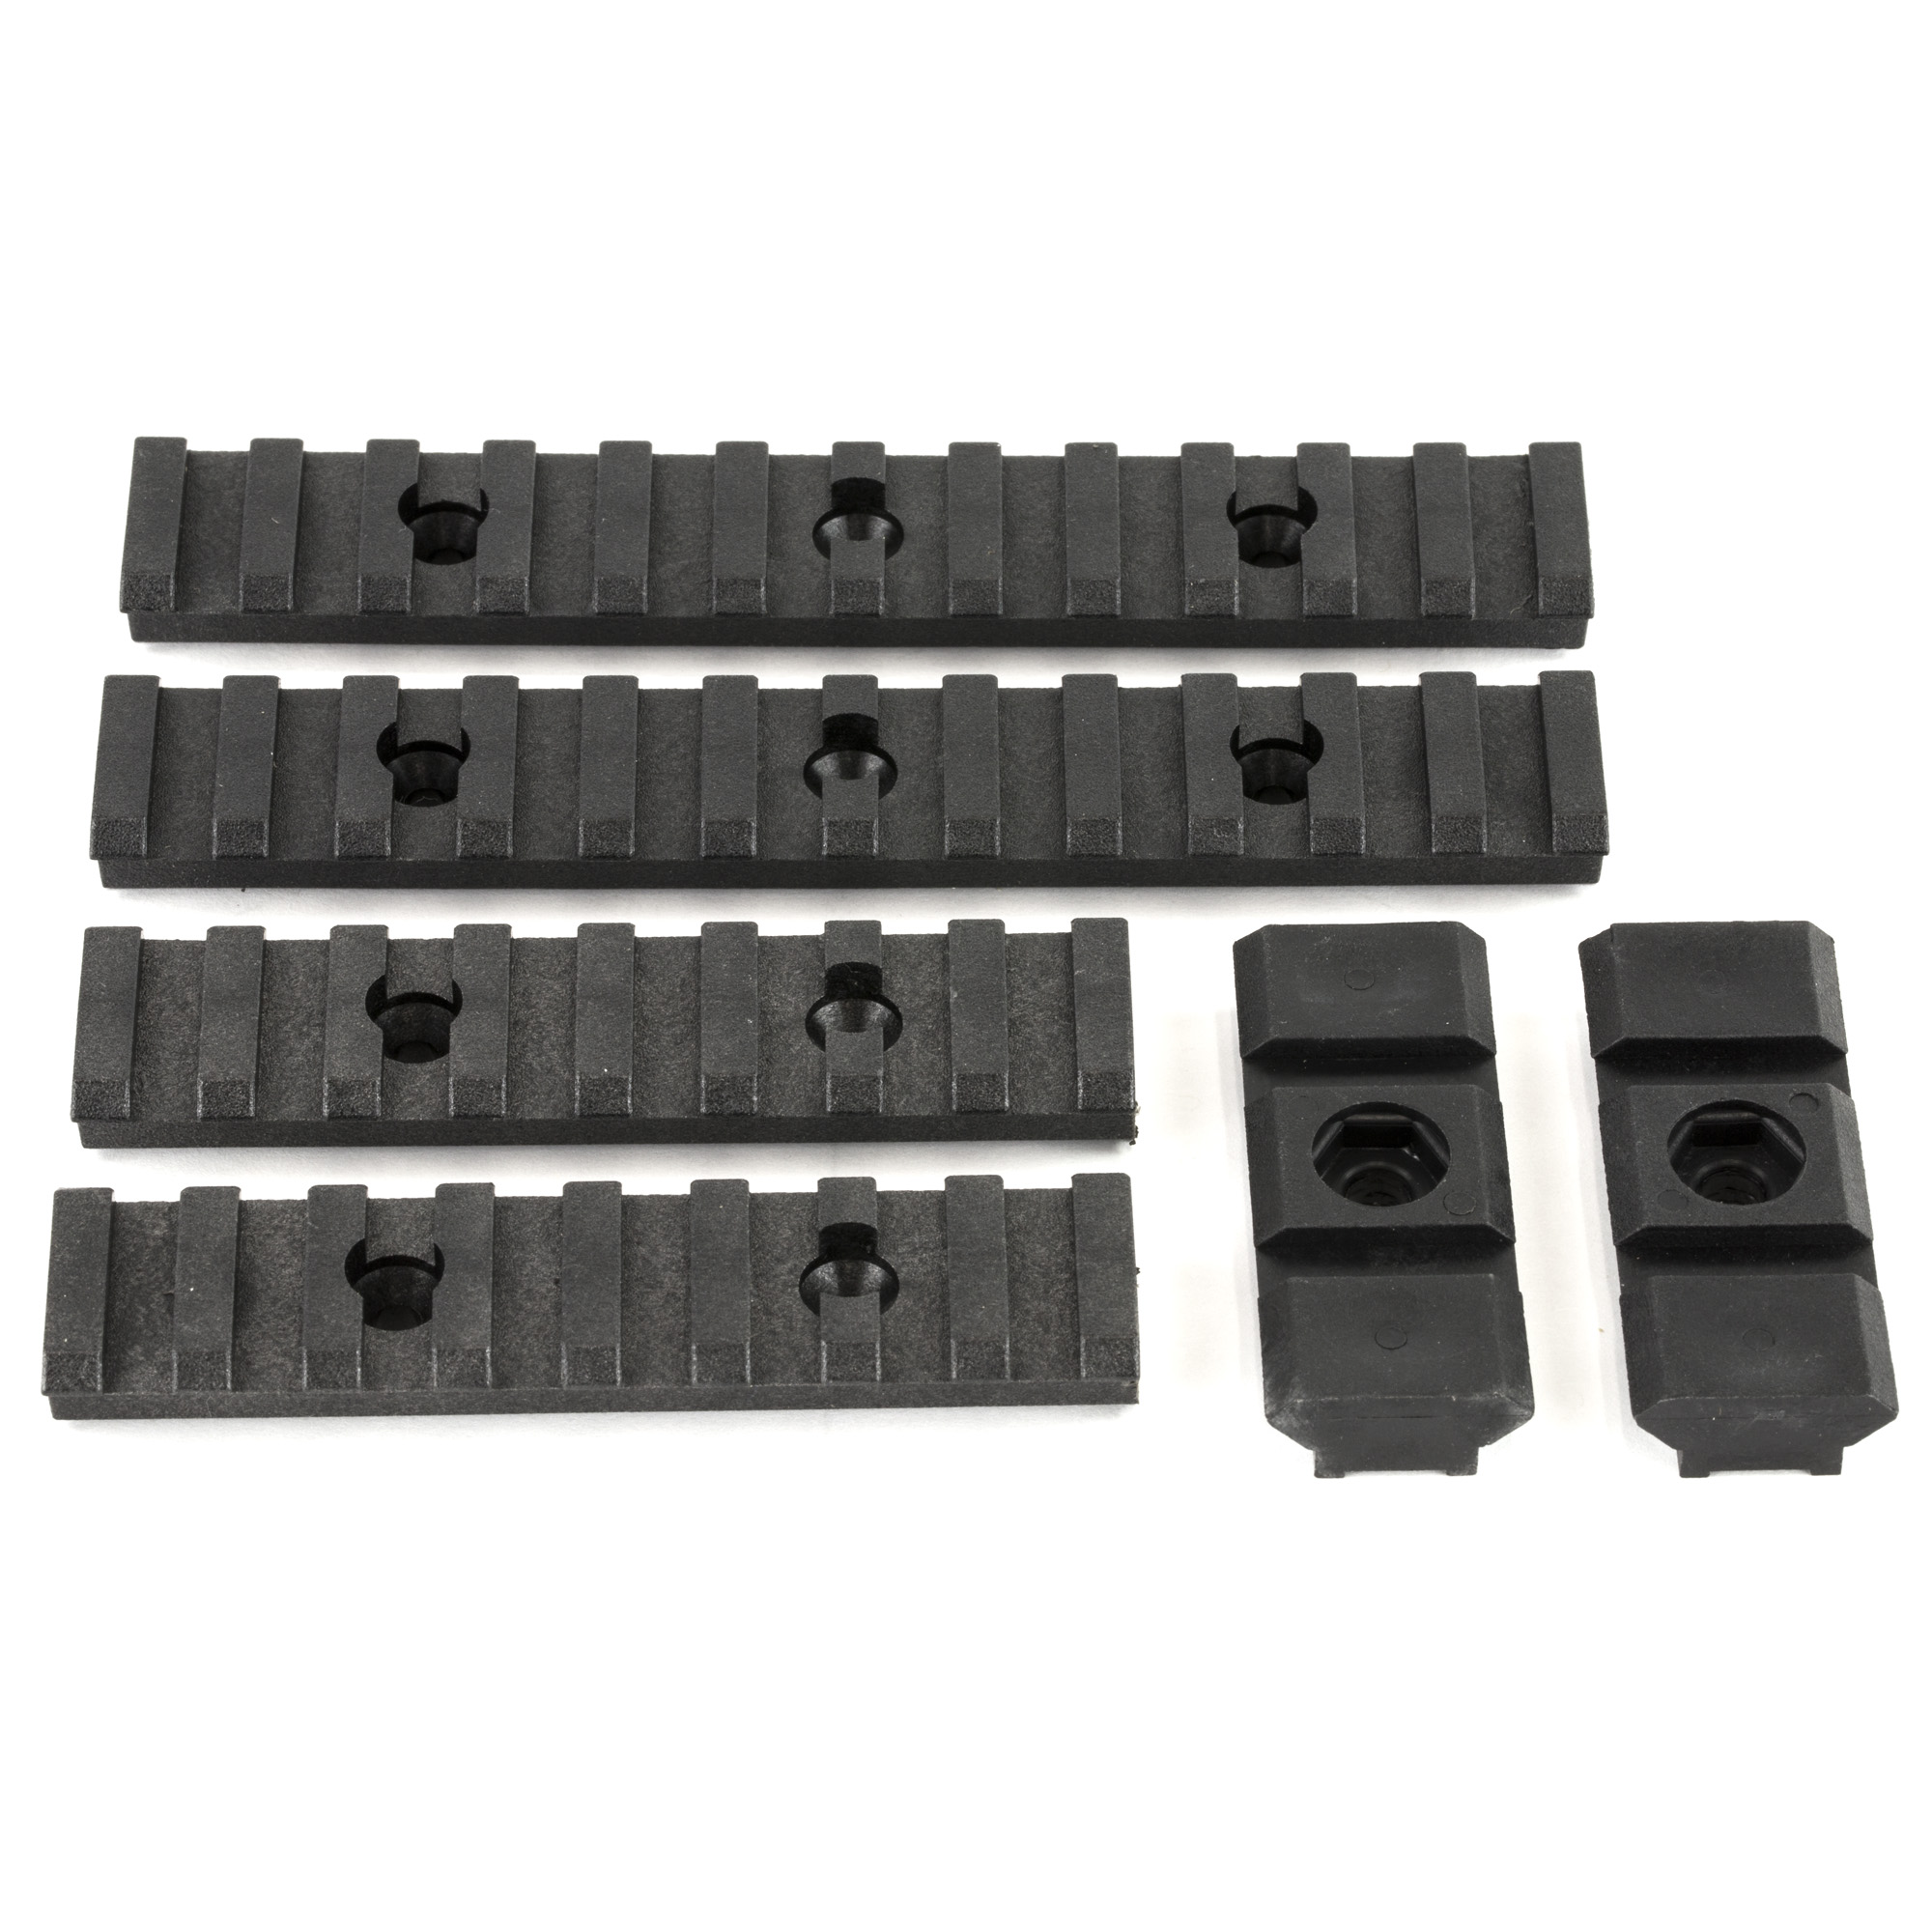 The Ultimate Rail Kit will provide you with any and all the lightweight polymer picatinny rails your firearm could possibly need. All mounting tools and hardware included.